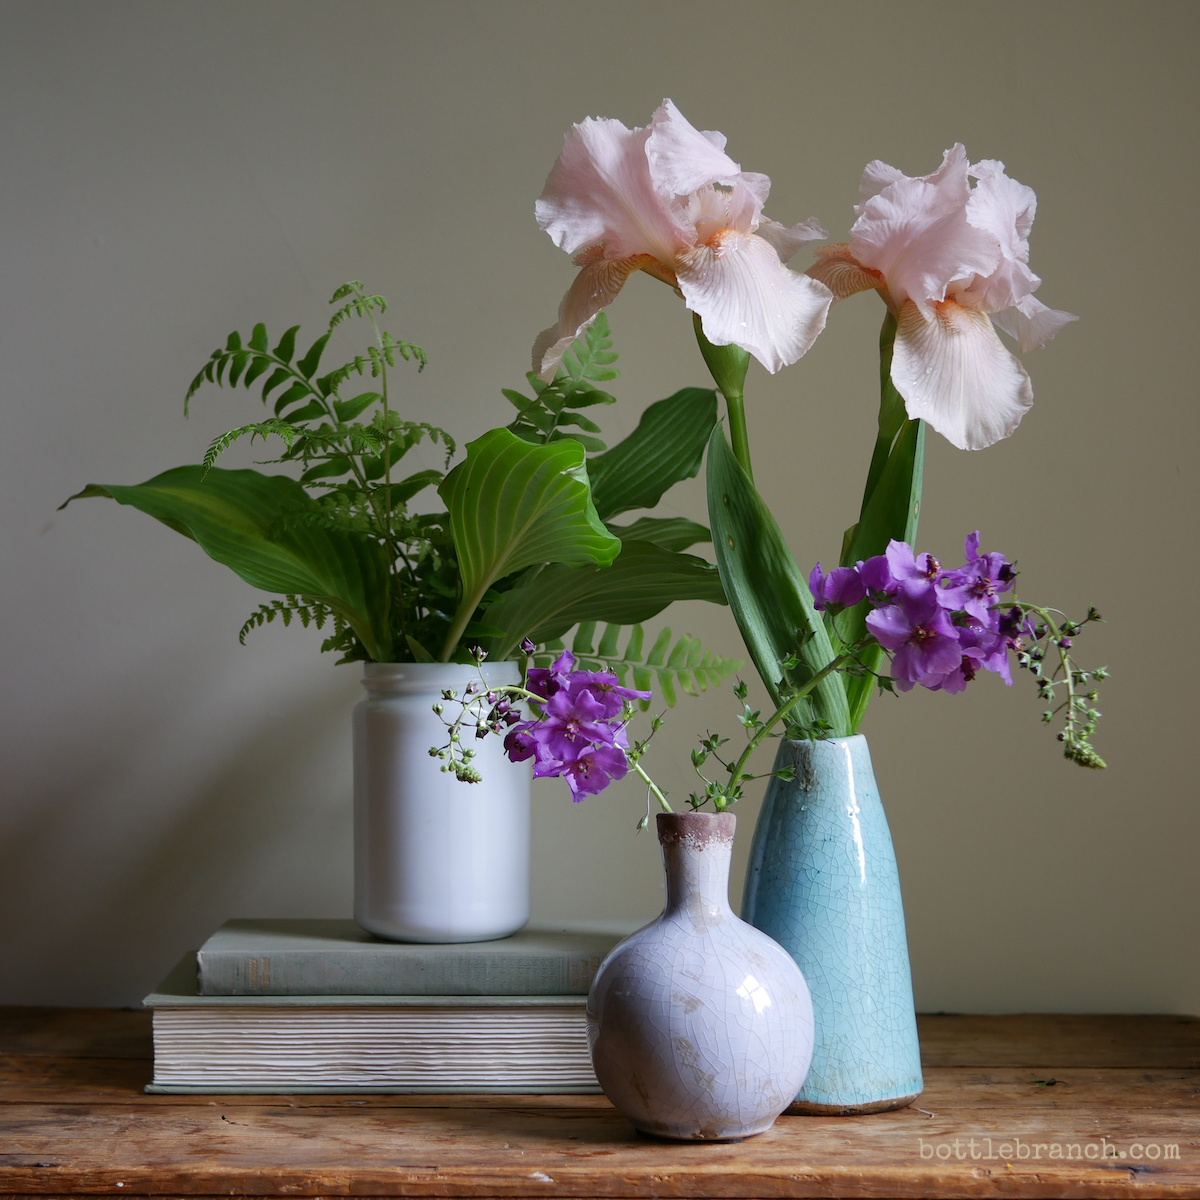 stilll life with irises and verbascum.JPG